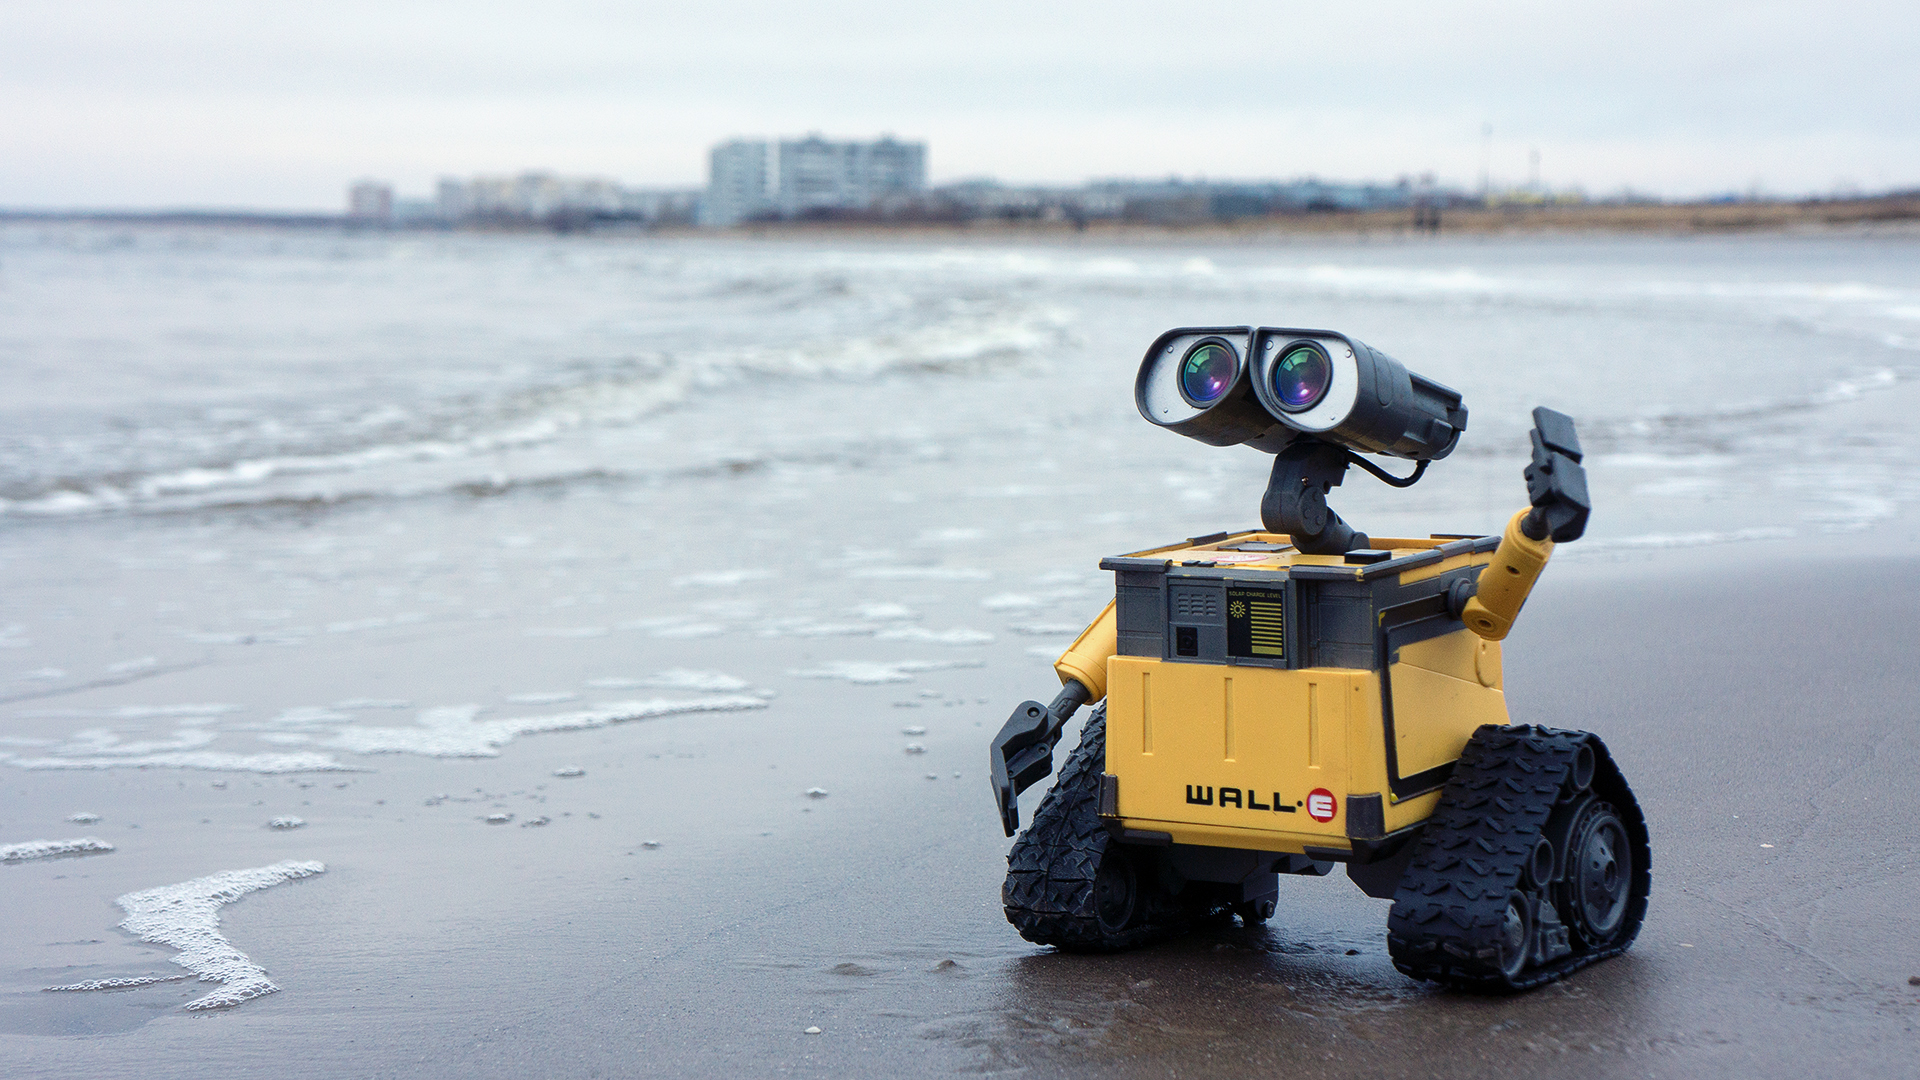 Pictures Wall E Water Coast Toy 1920x1080